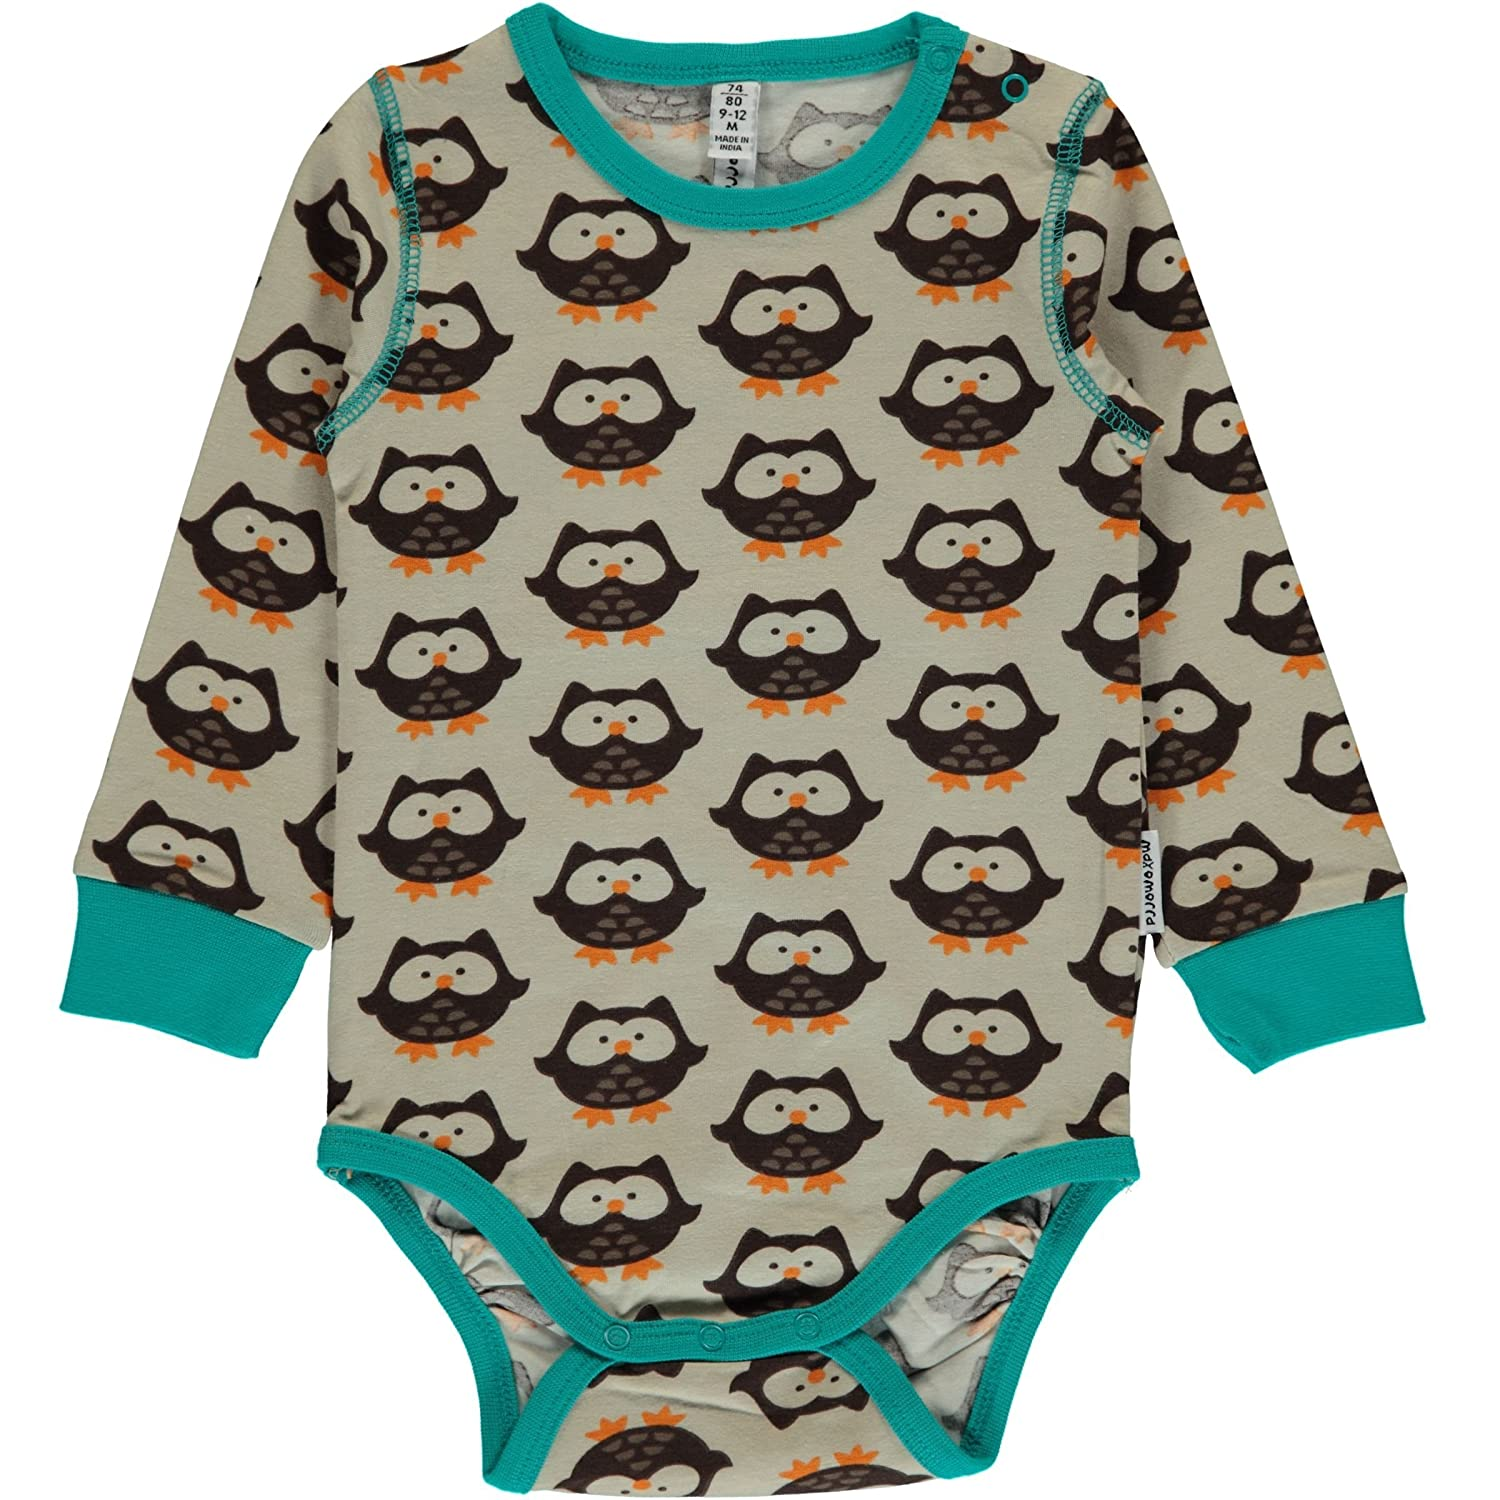 Maxomorra Long Sleeved Body Vest - Owl